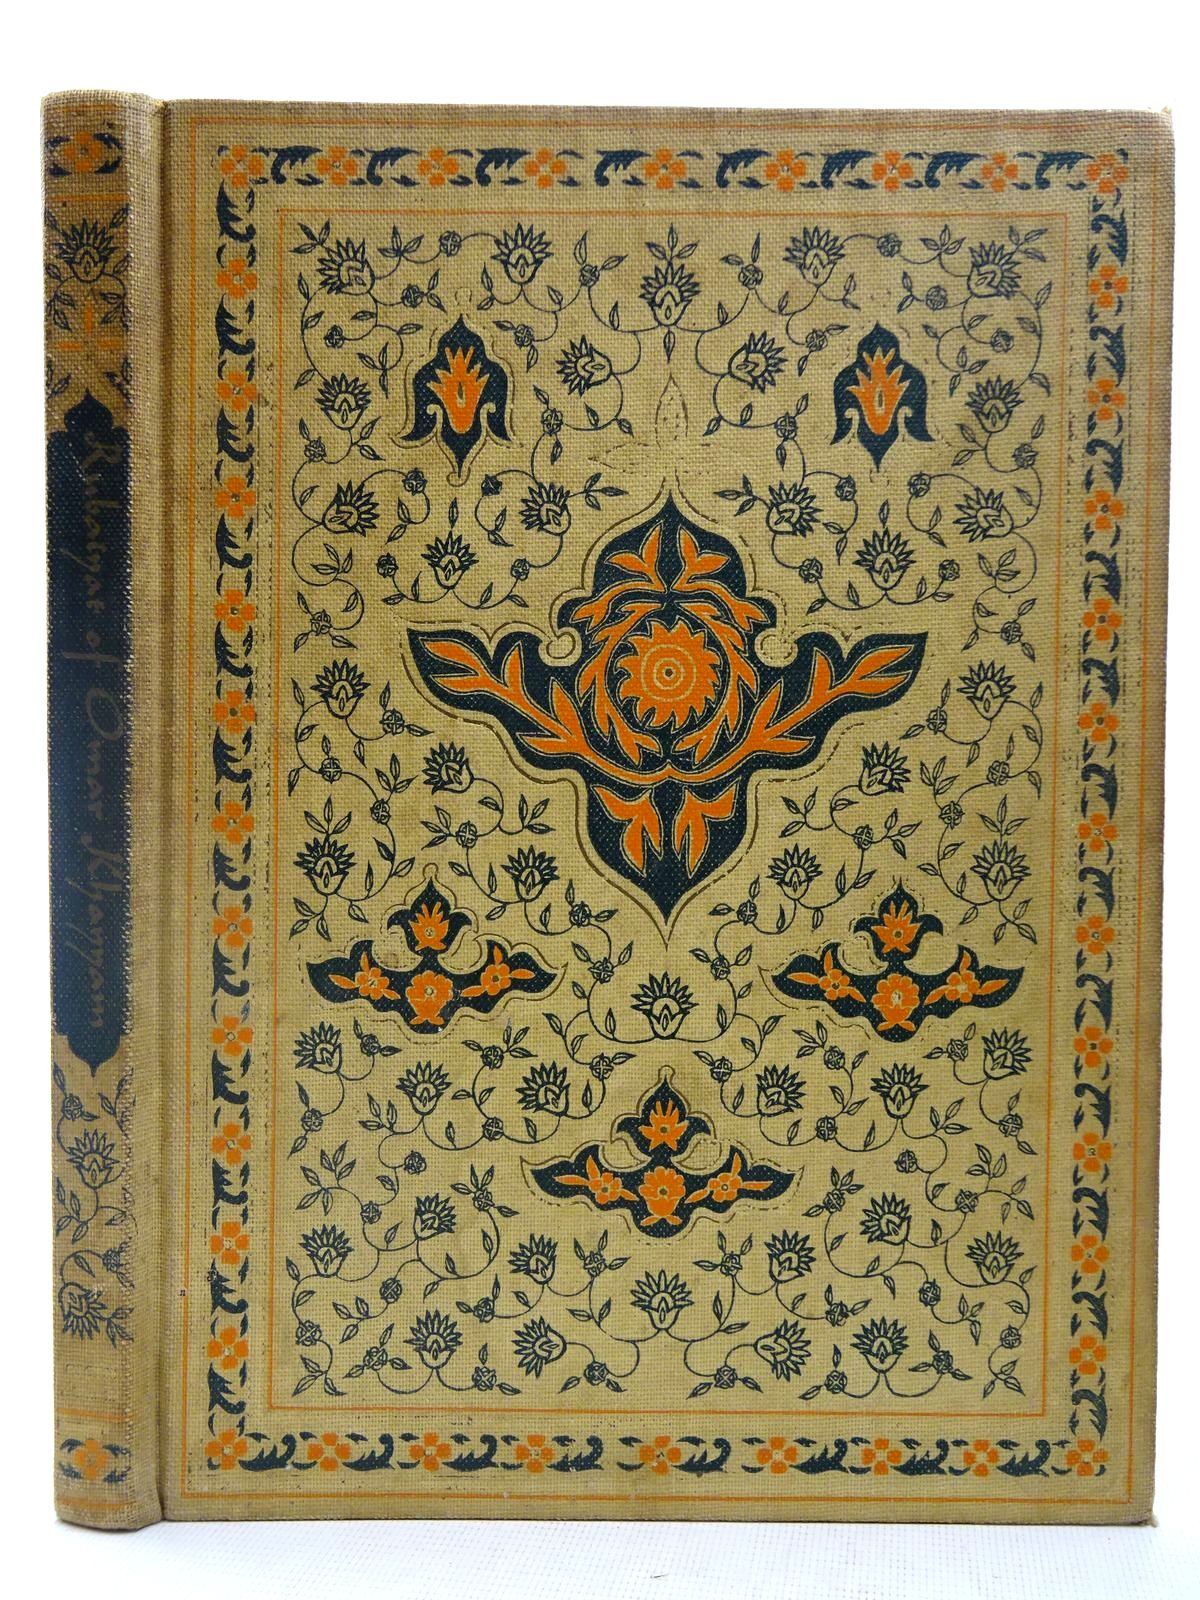 Photo of RUBAIYAT OF OMAR KHAYYAM written by Fitzgerald, Edward illustrated by Katchadourian, Sarkis published by Grosset & Dunlap (STOCK CODE: 2127832)  for sale by Stella & Rose's Books